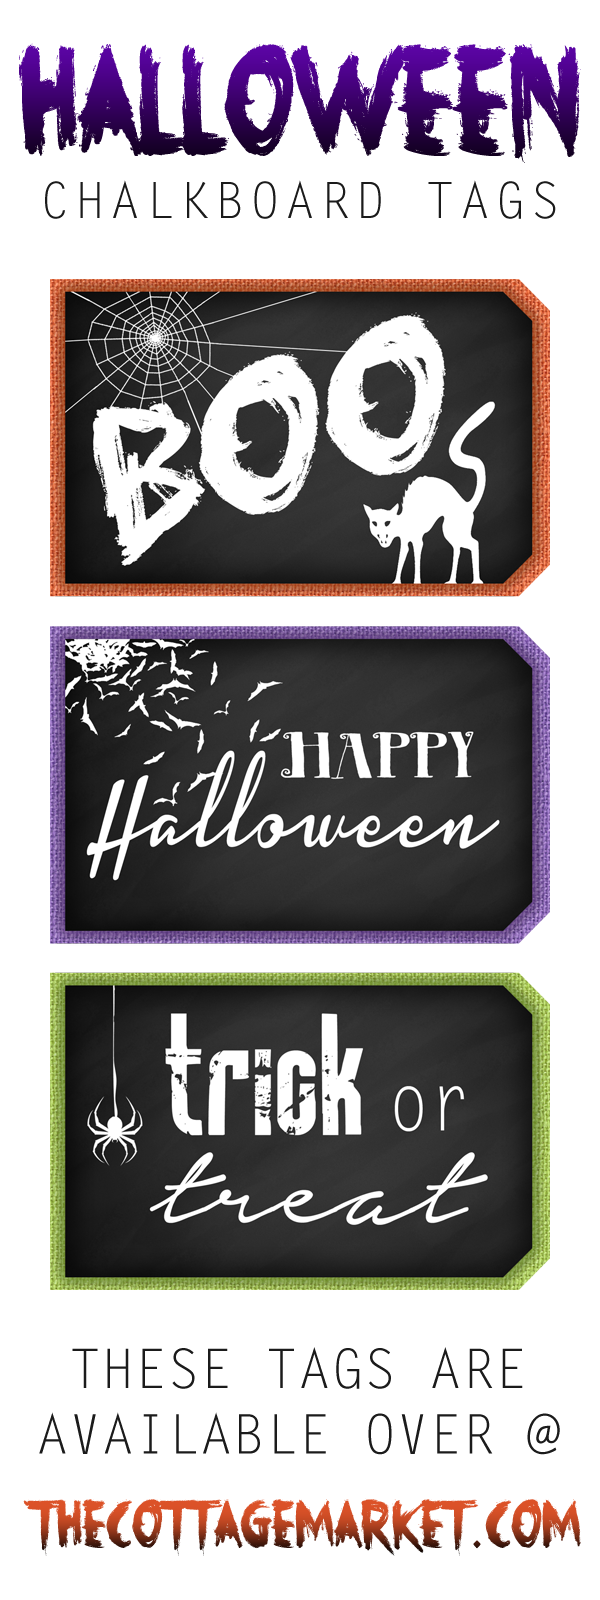 TCM-HalloweenChalkboardTags-Tower